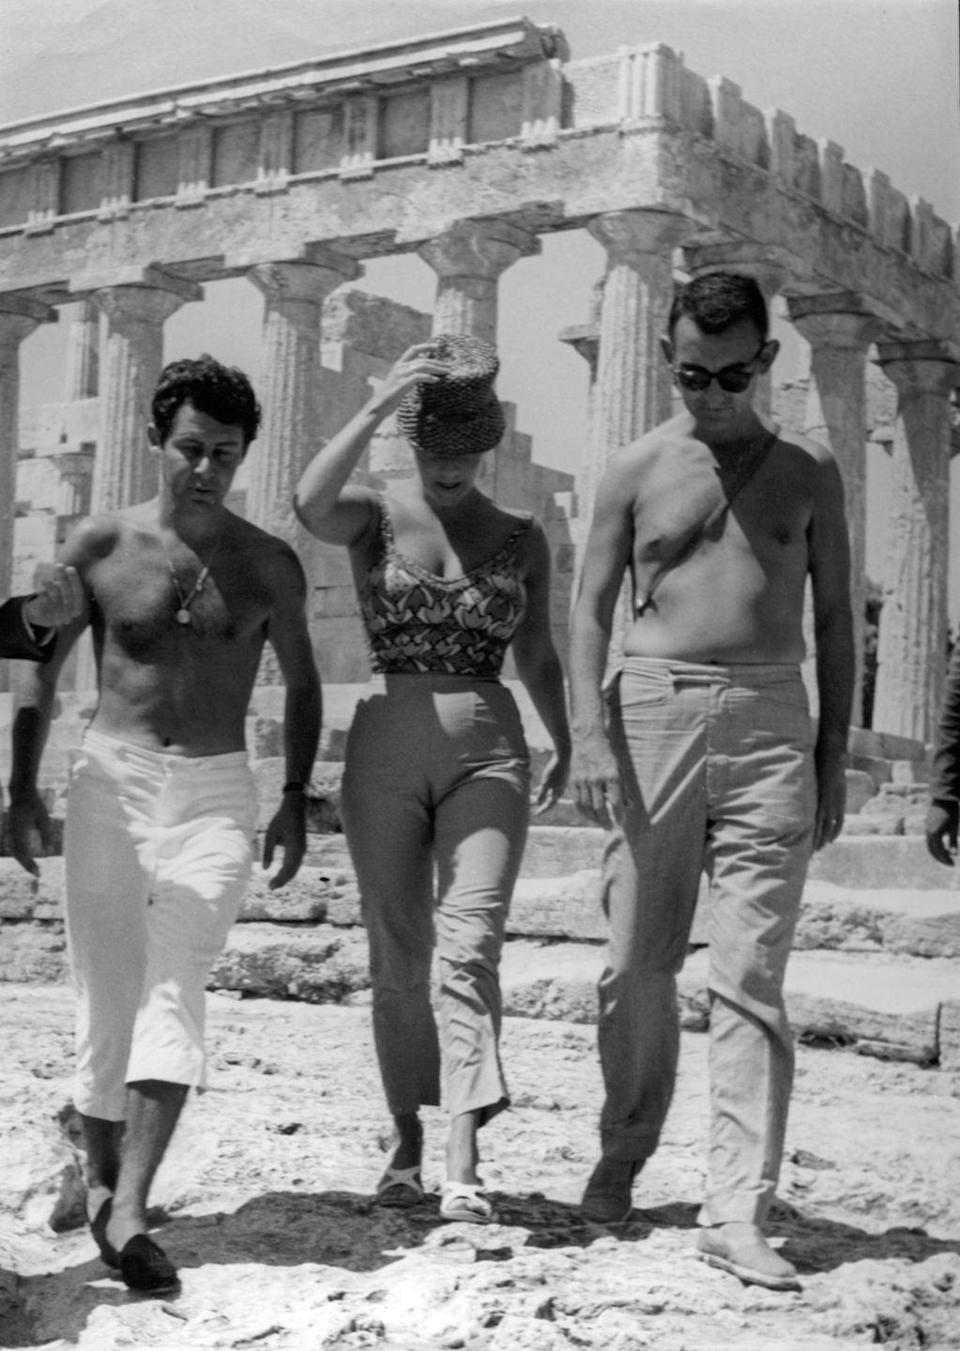 <p>Liz Taylor and her husband Eddie Fisher visiting the Parthenon in Athens, Greece.</p><p>Other celebrity visitors this year: Jayne Mansfield, Mickey Hargitay.</p>